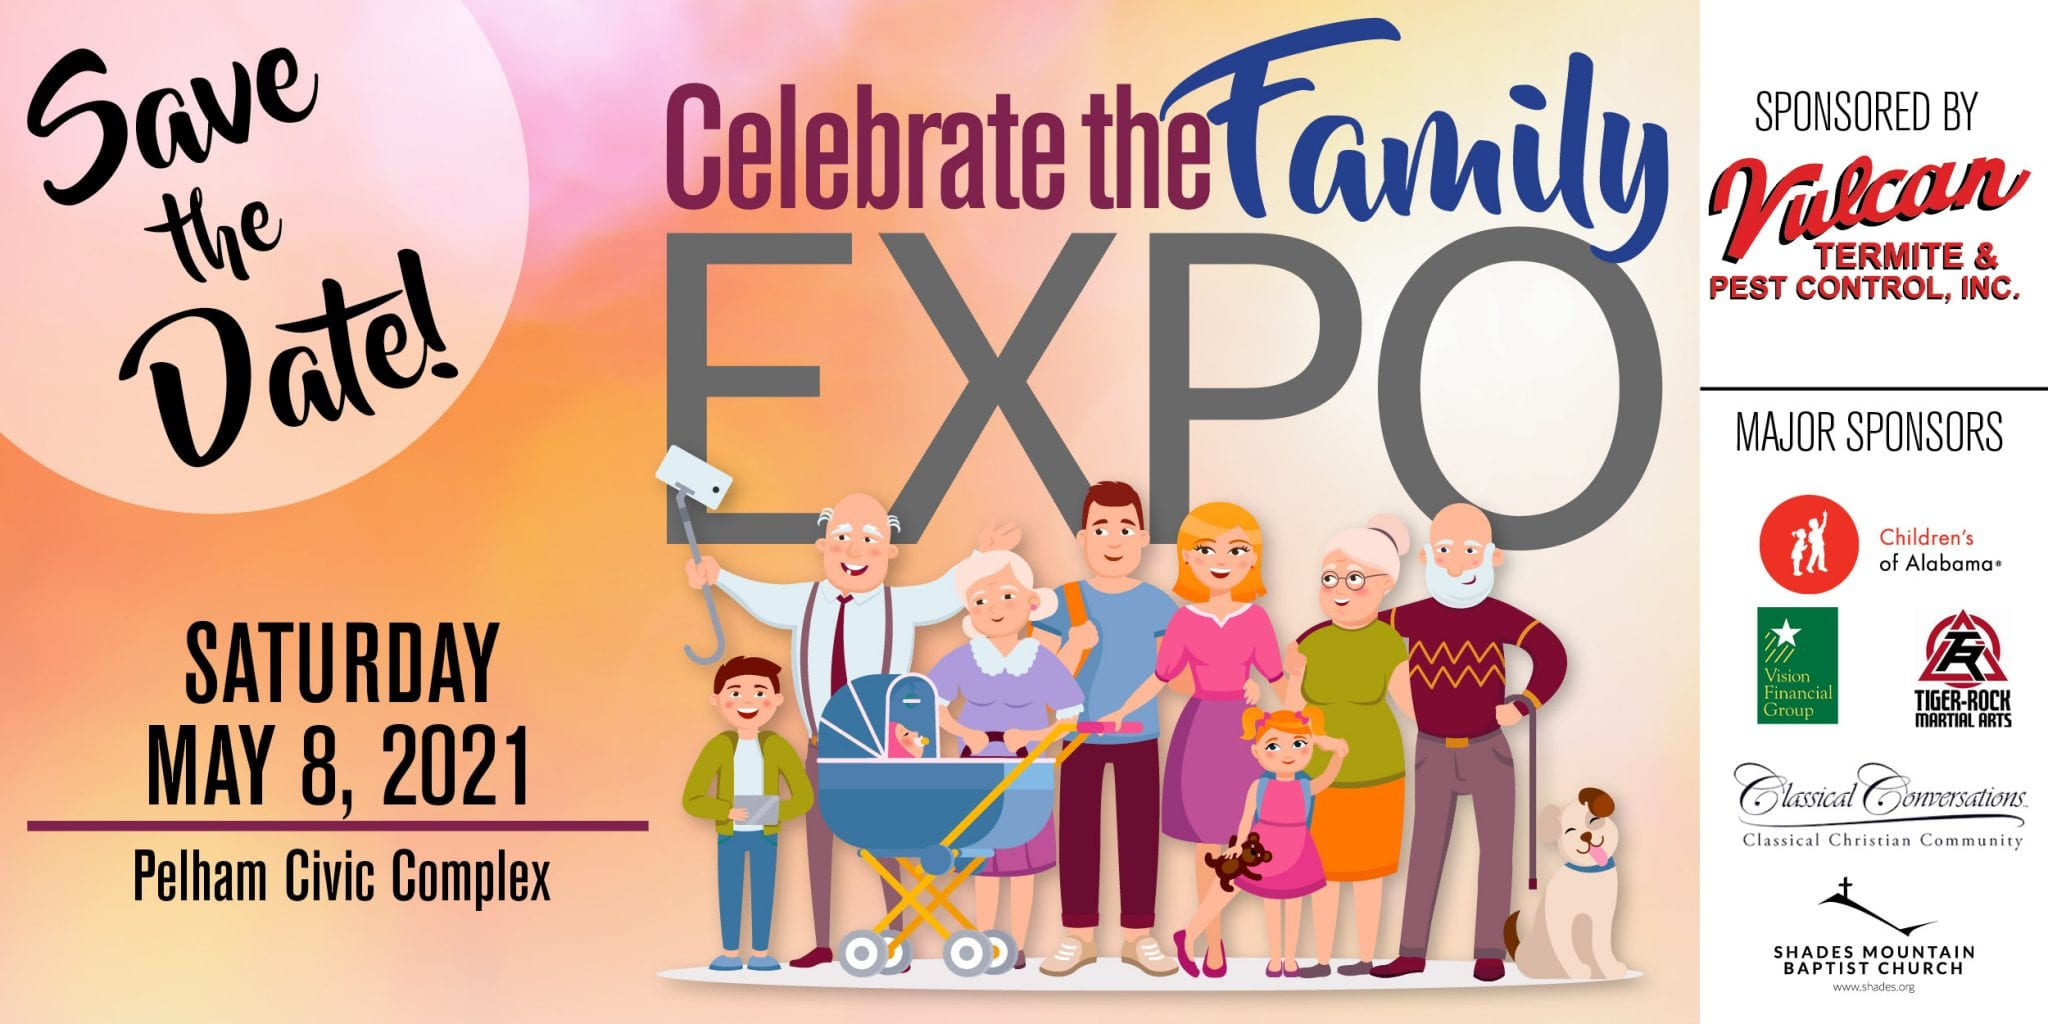 Expo save the date 2021 banner with sponsors